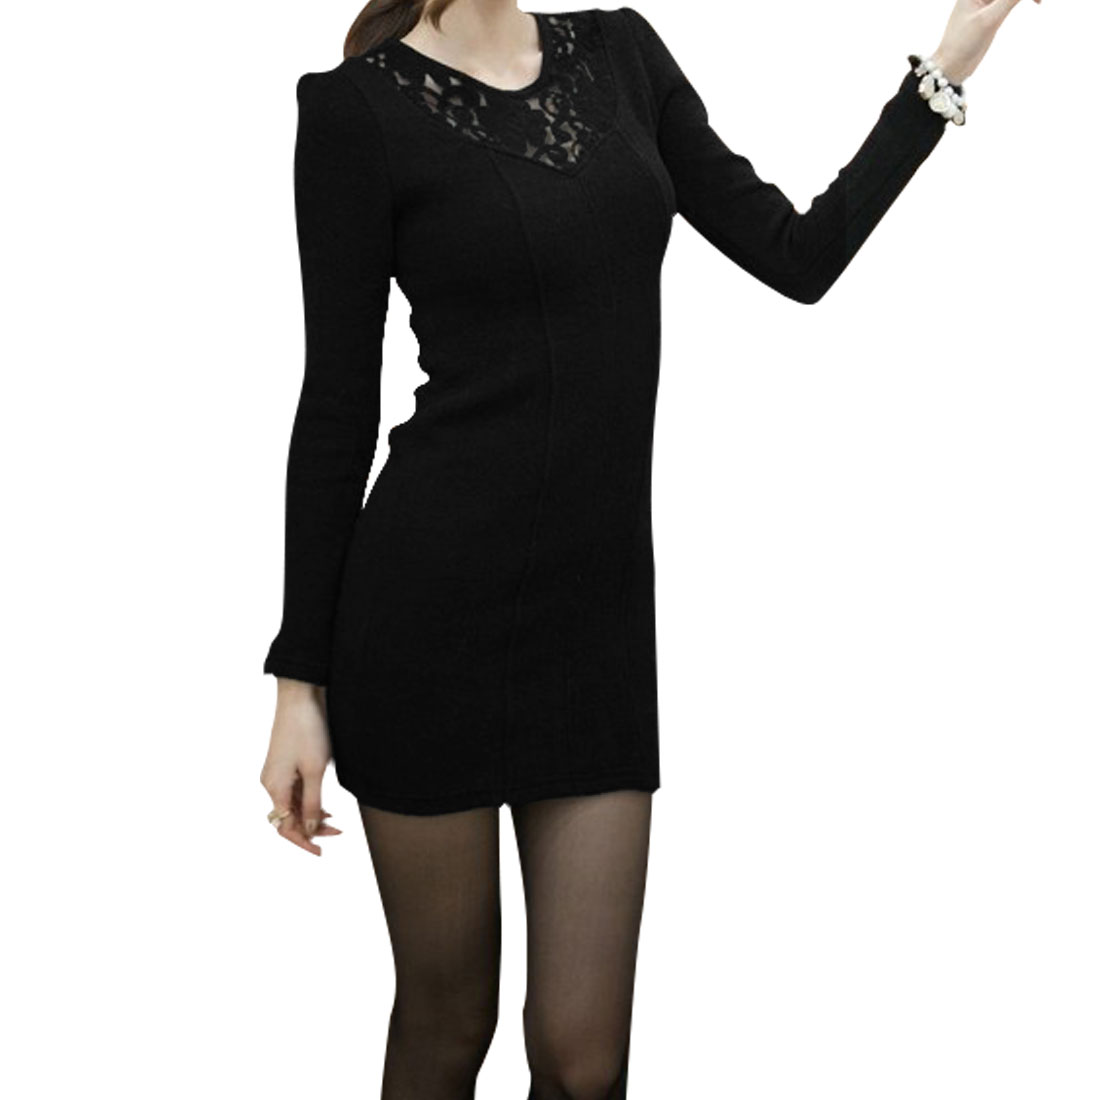 Ladies Black Puff Sleeves Lace Panel Skinny Autumn Mini Dress XS